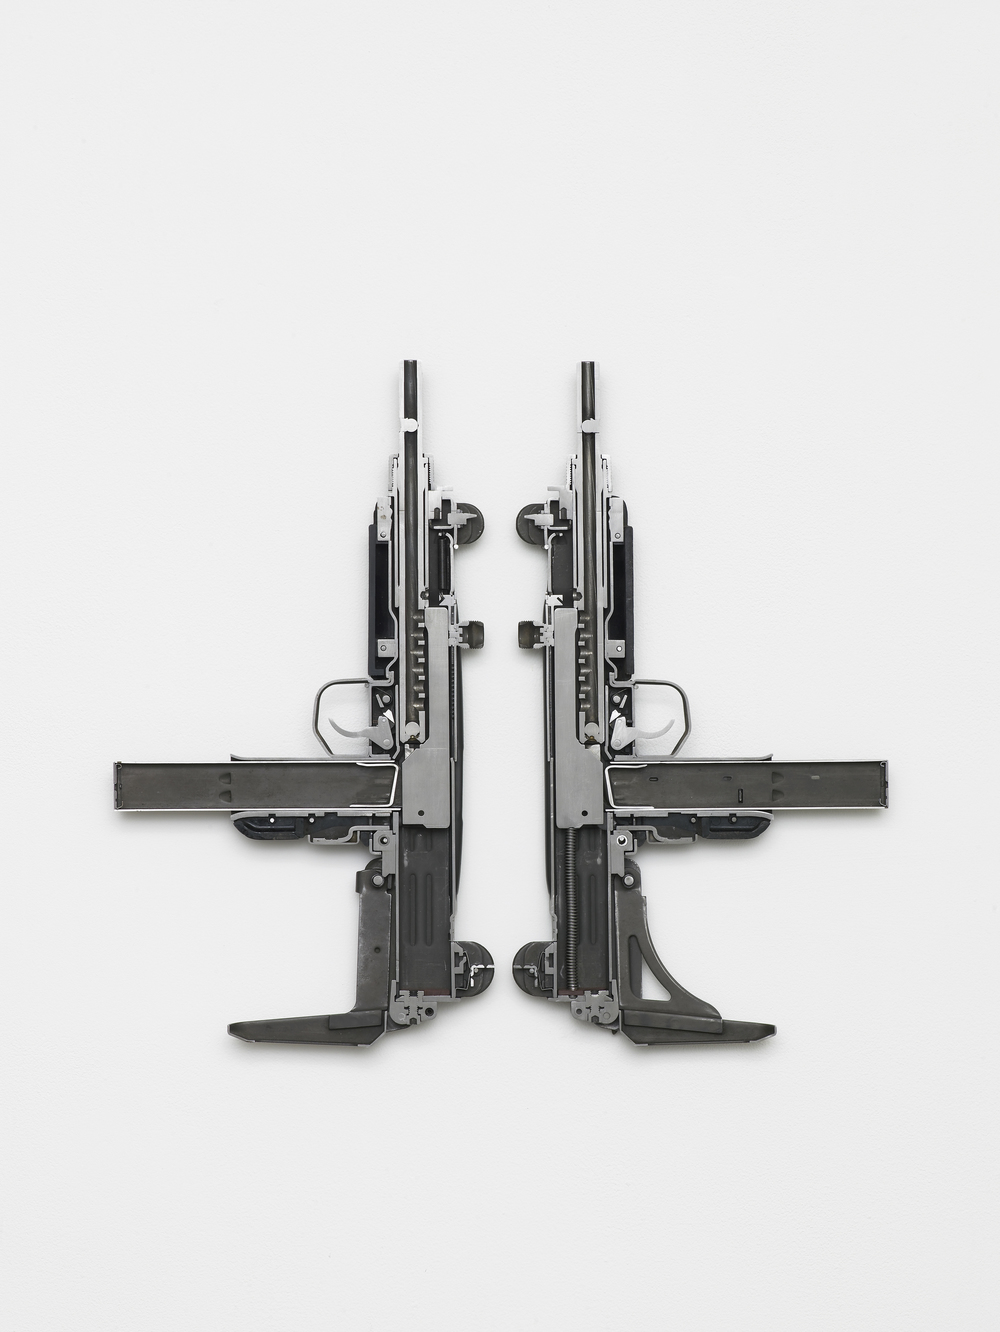 UZI 2016 Weapon 52 x 56 x 4 cm / 20.4 x 22 x 1.5 in